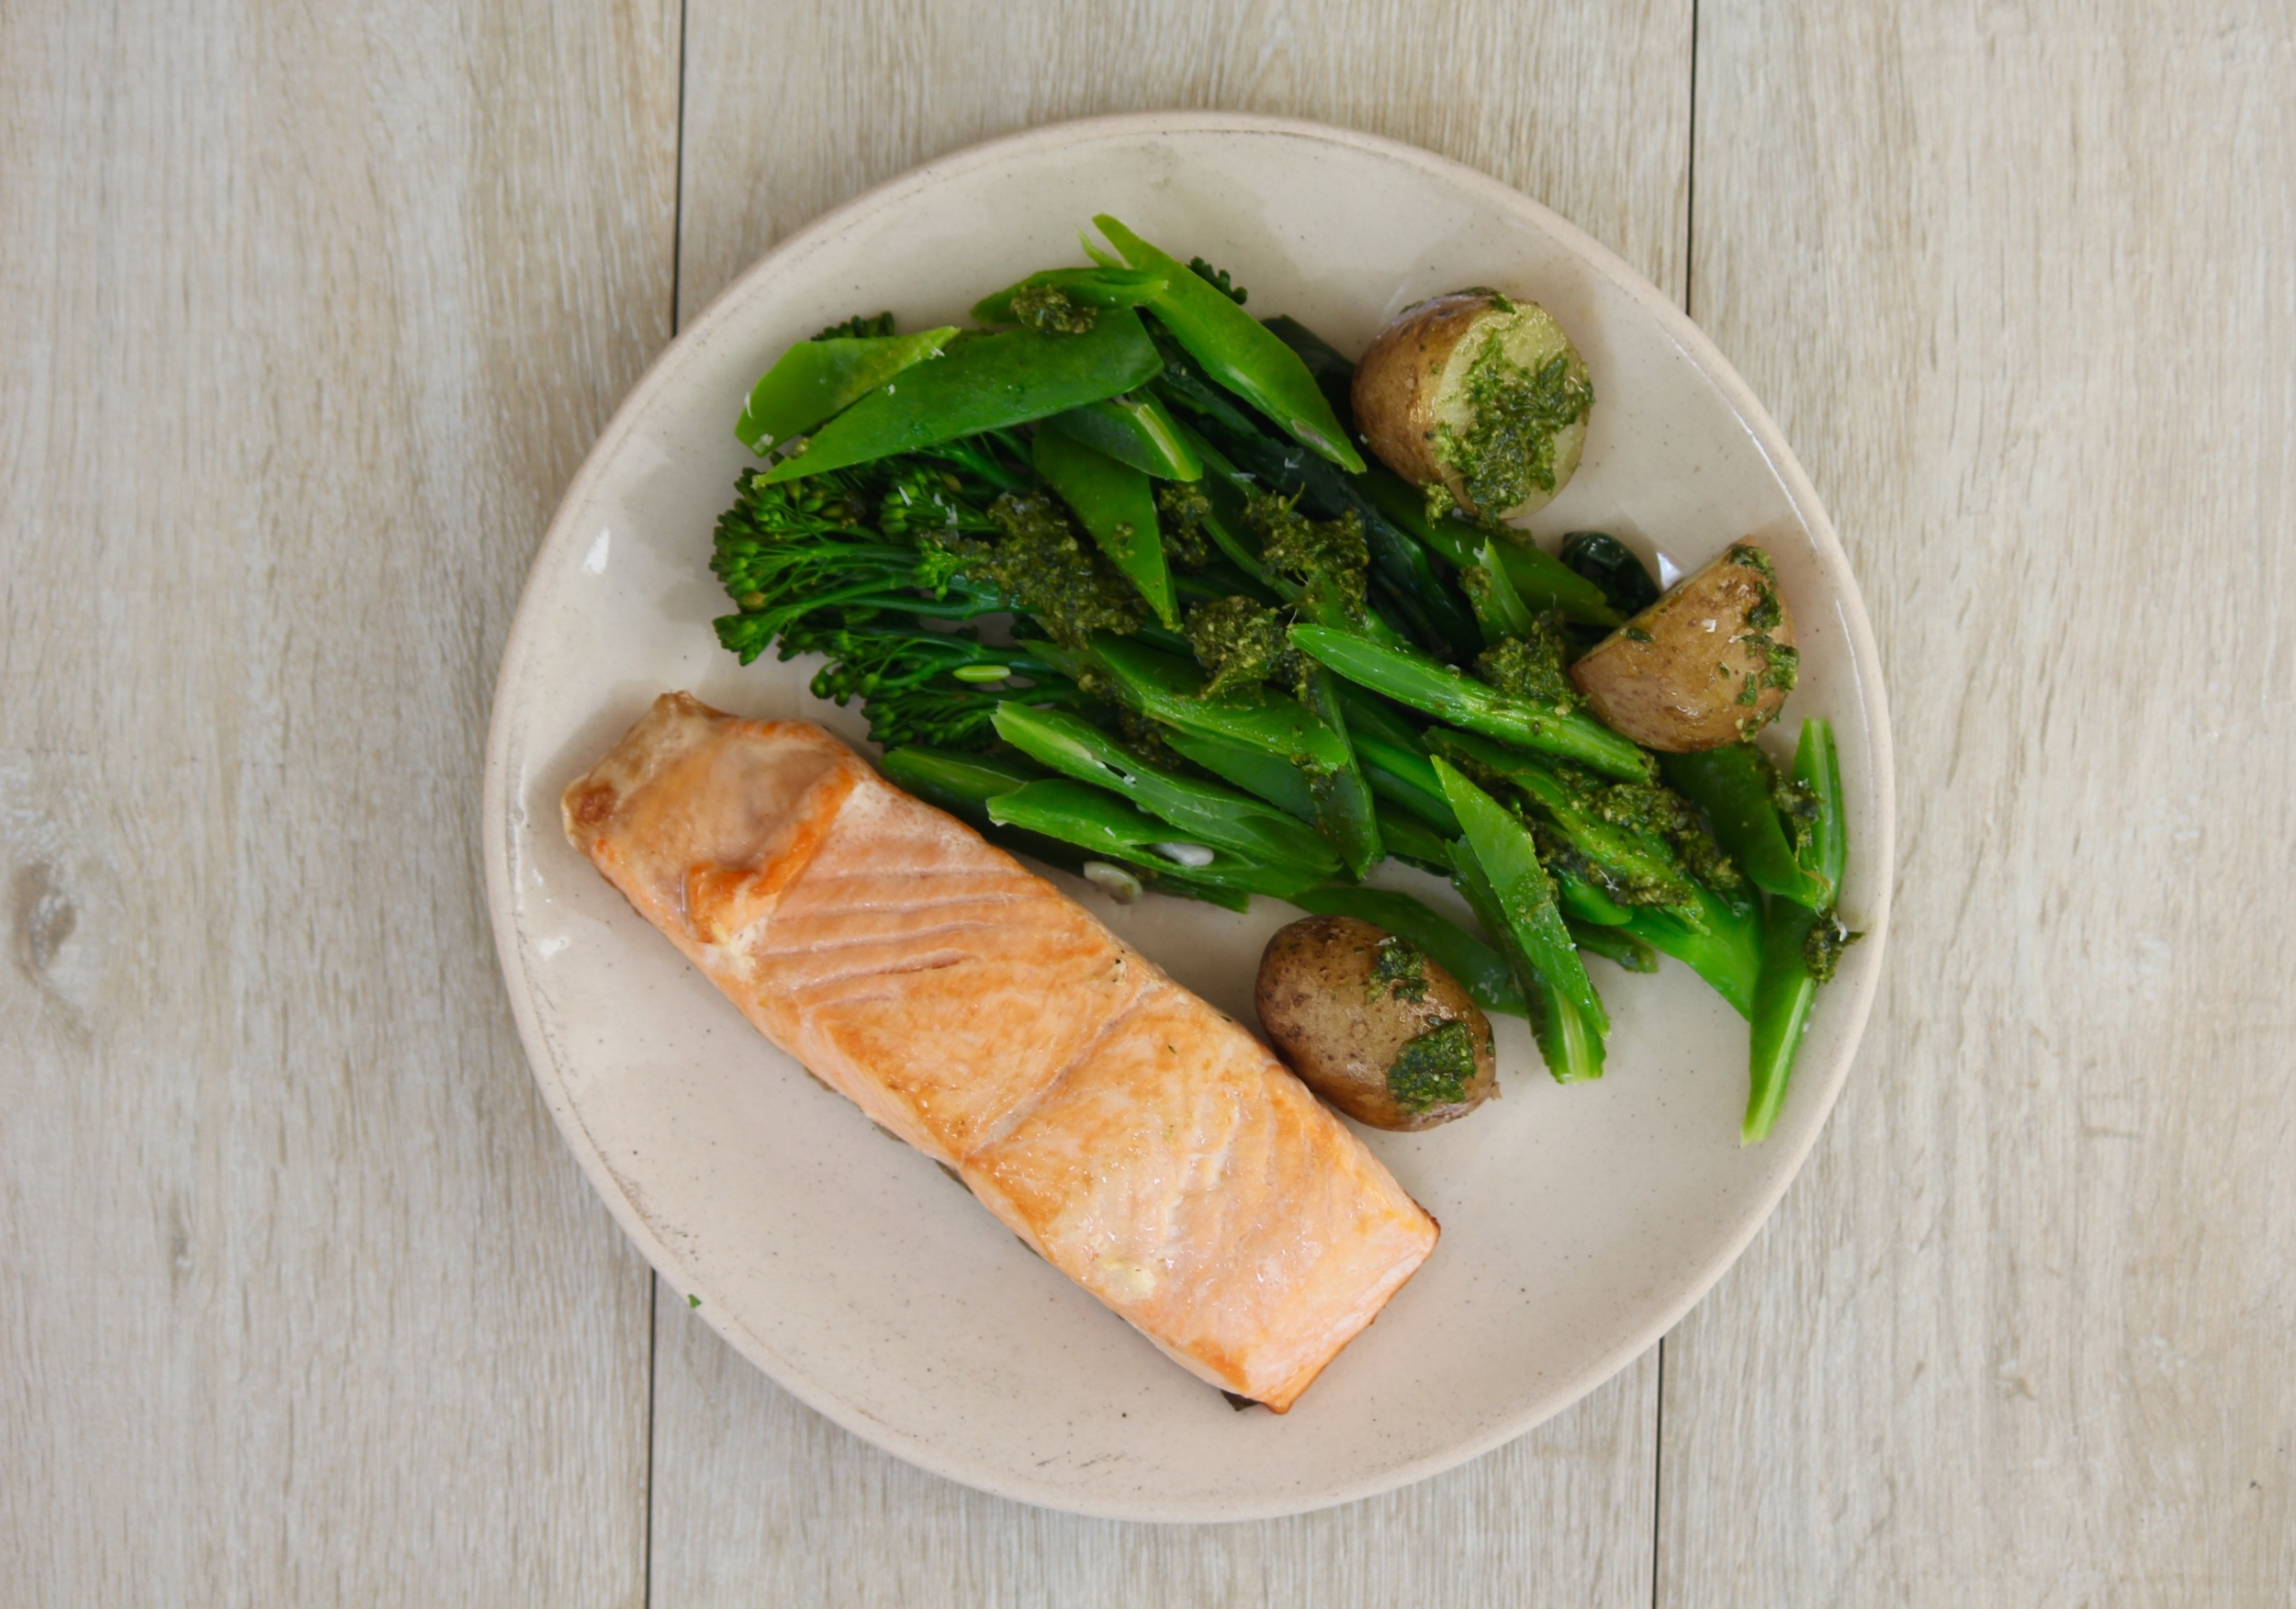 Pan-fried Salmon with New Potatoes, Runner Beans, Tender-stem Broccoli and Homemade Pesto